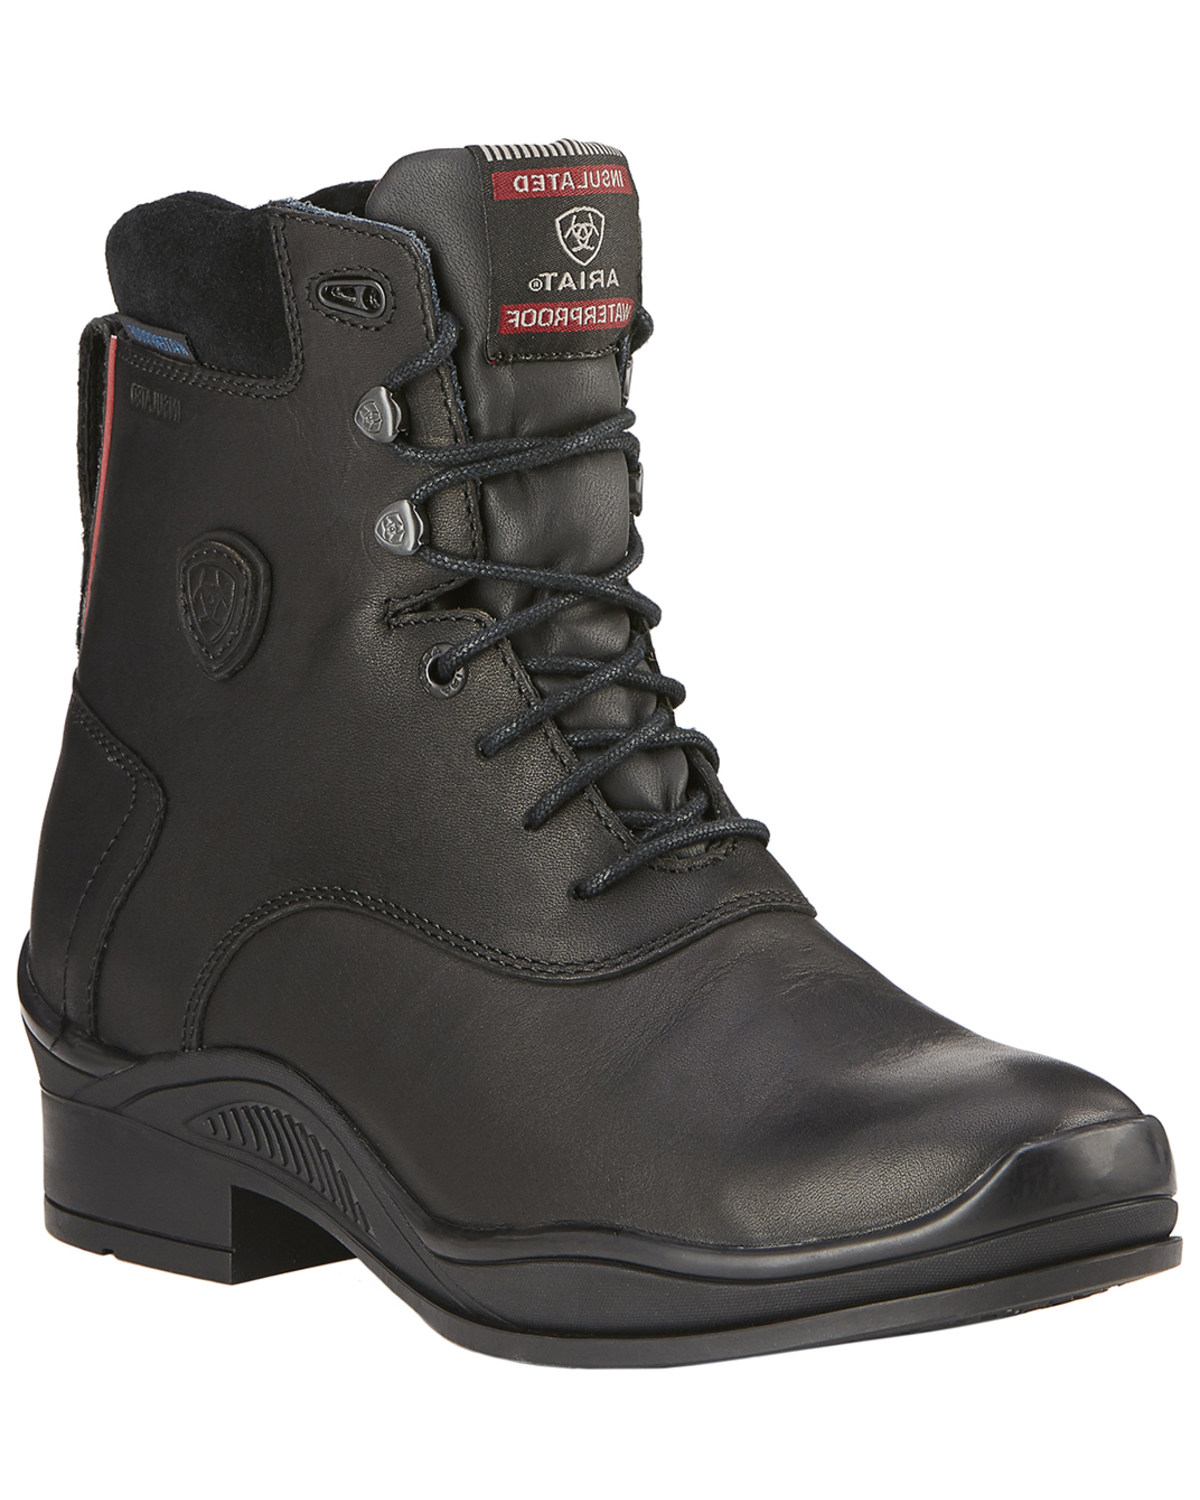 Ariat Women's Extreme Lace H2O Insulated English Riding ...